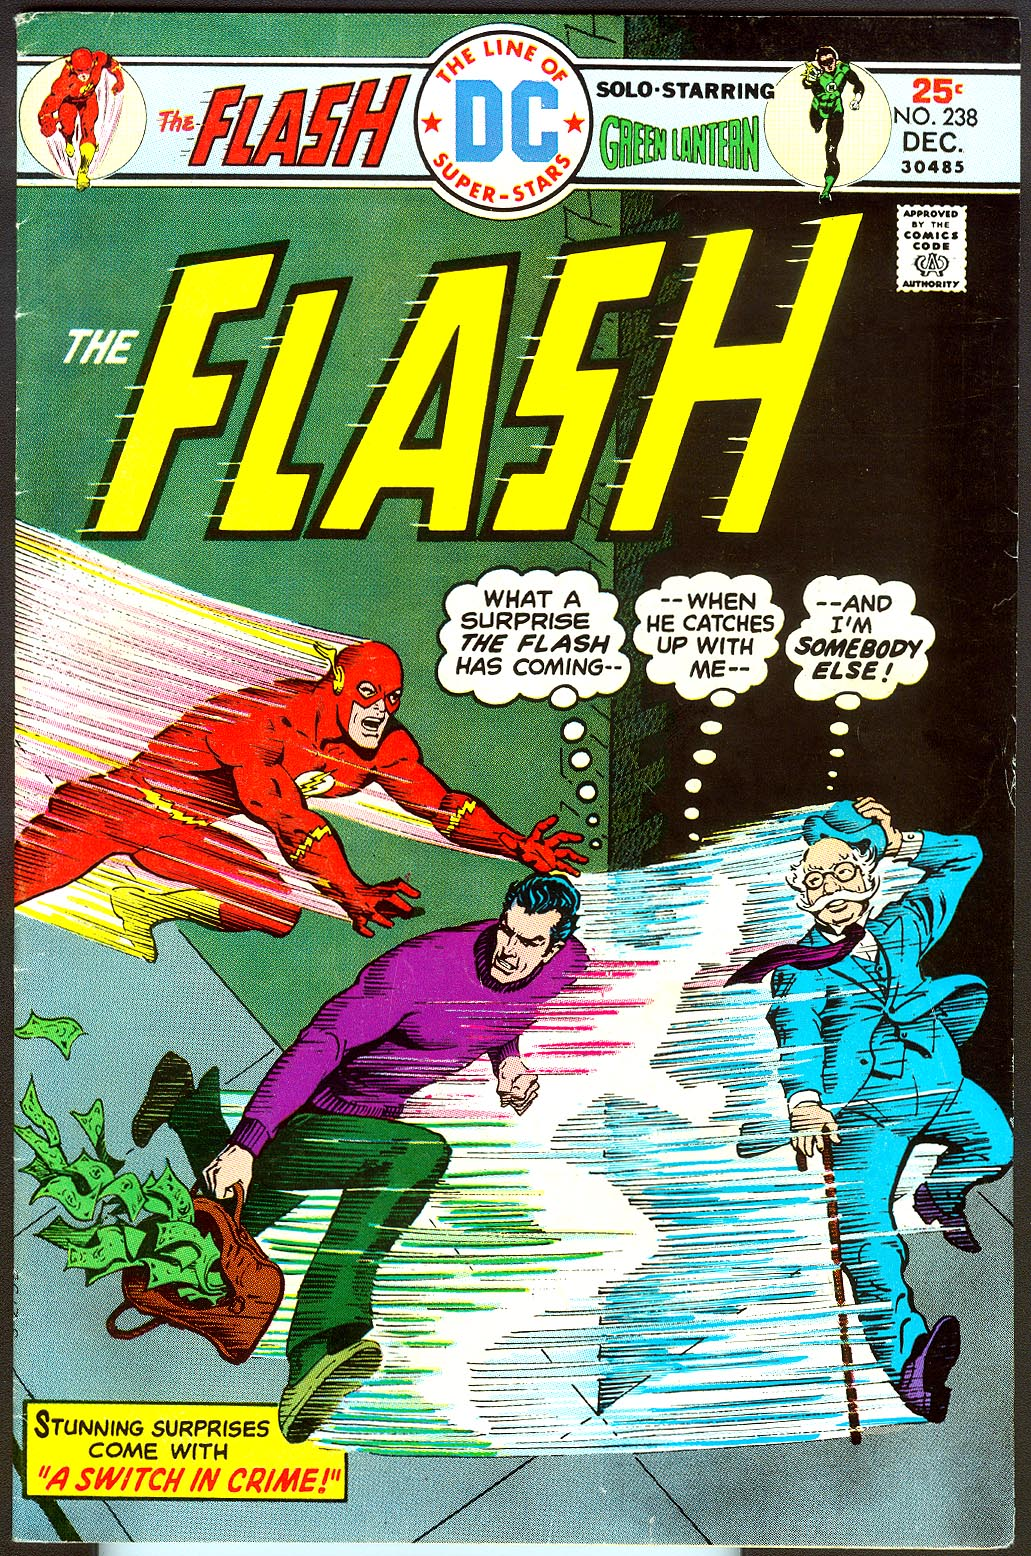 Flash vol 1 - 238 -F